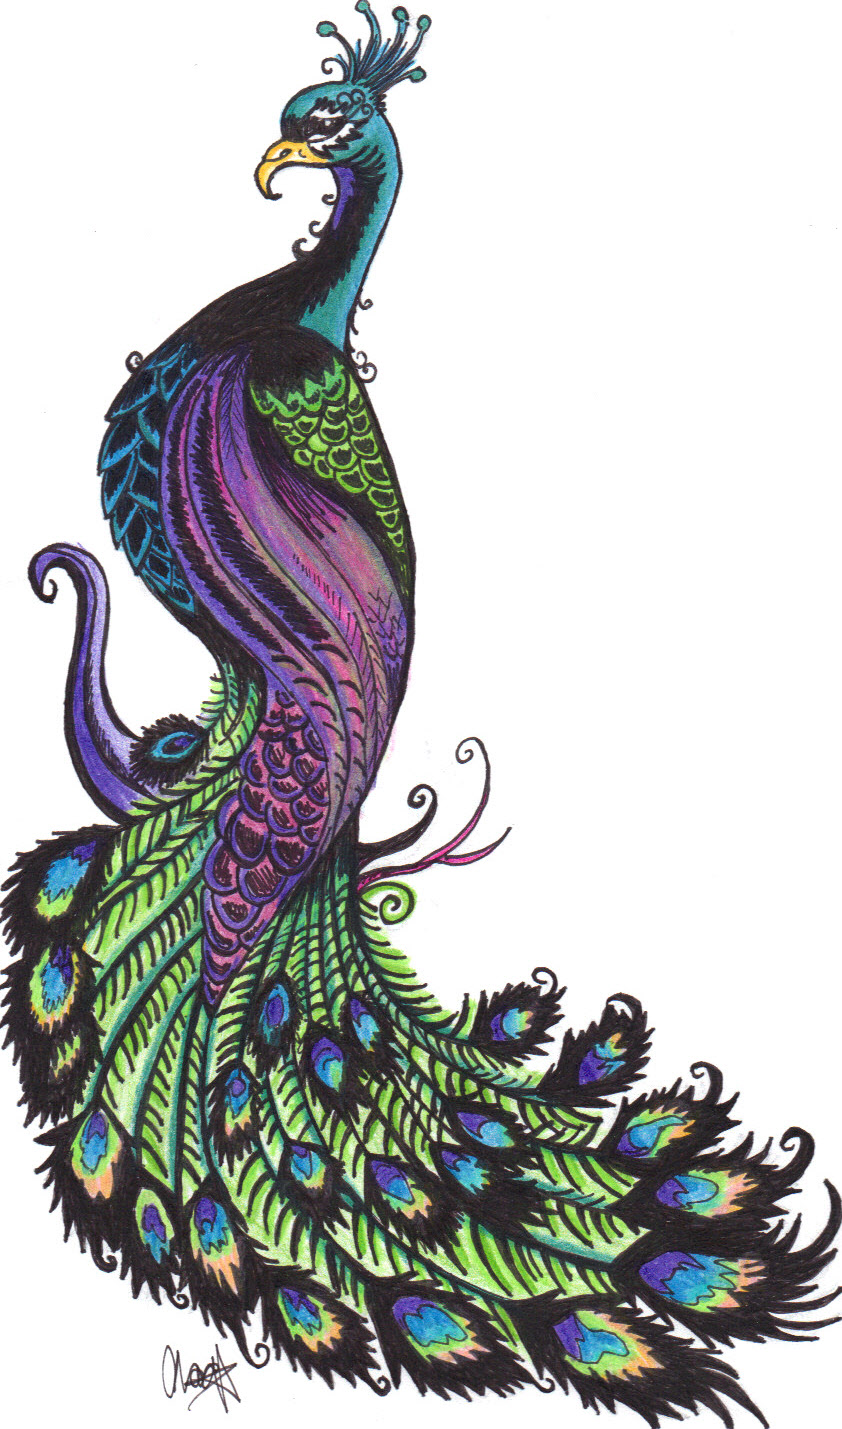 medium resolution of animals clipart peacock gallery free images